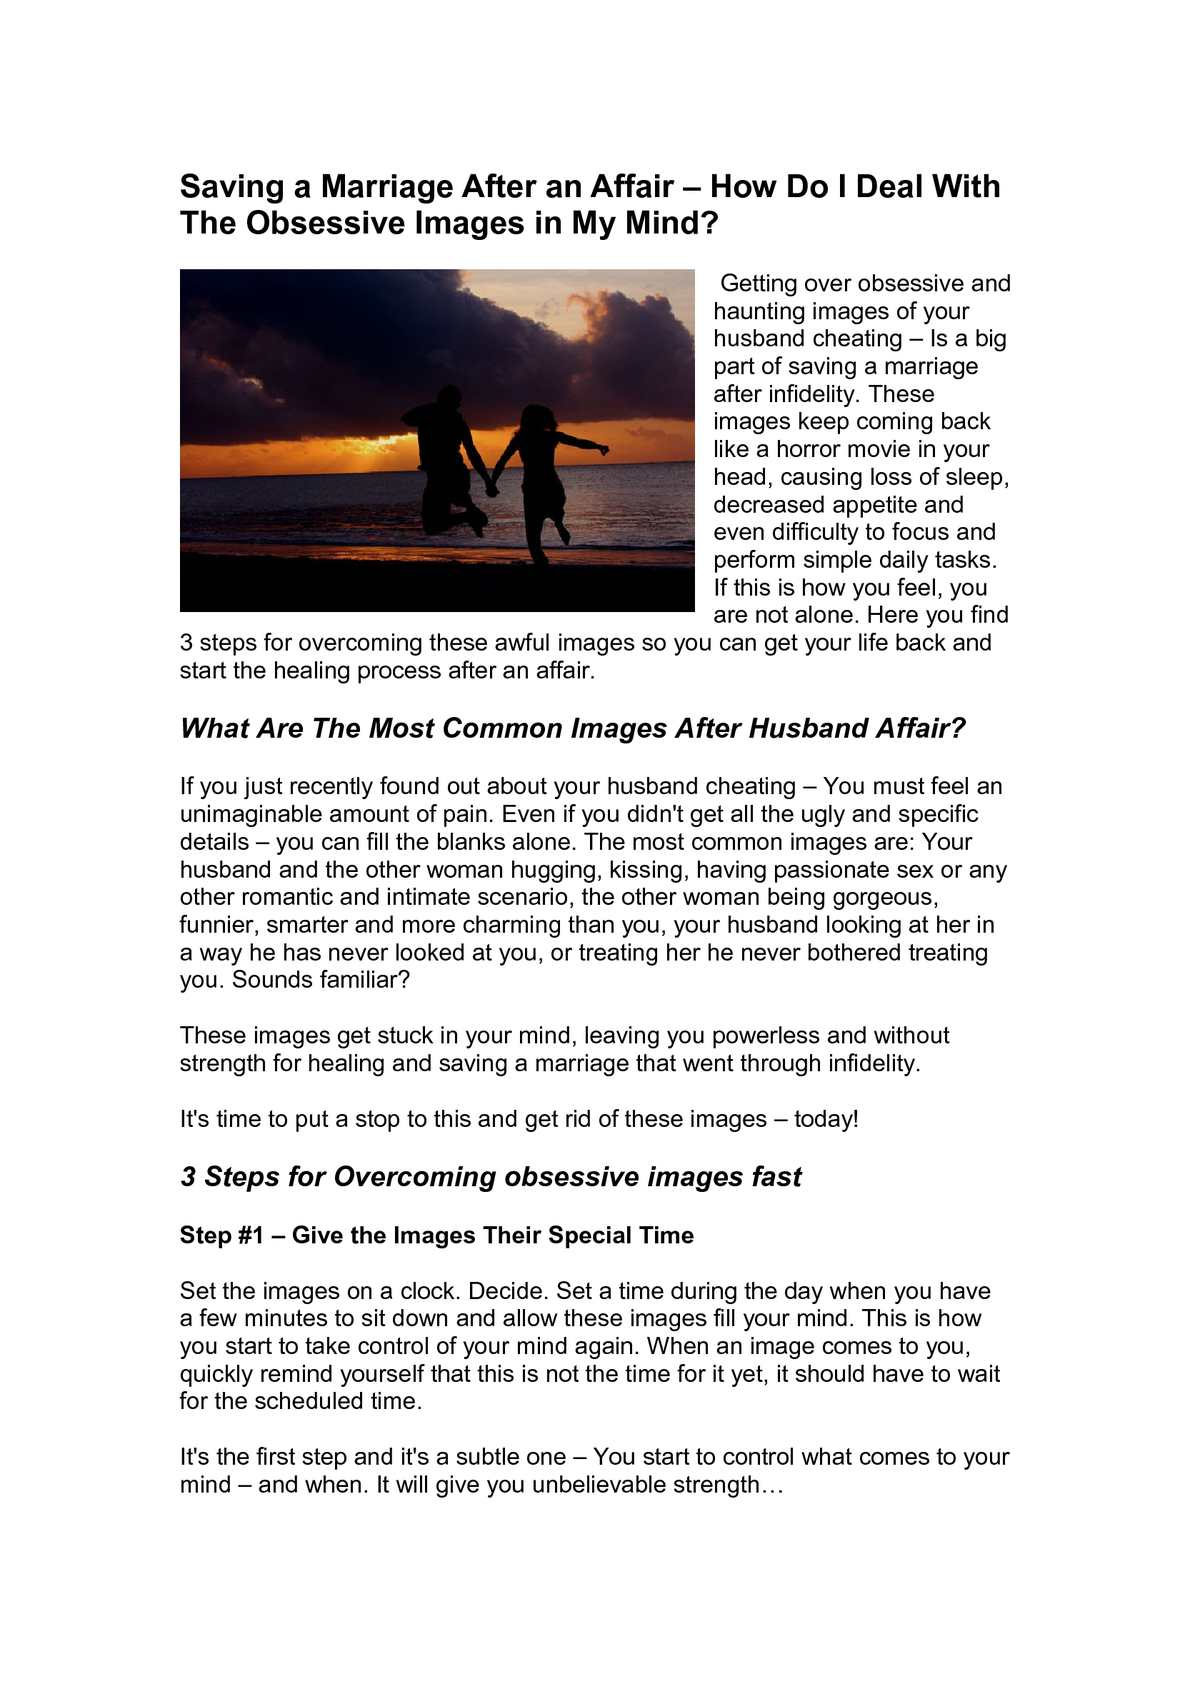 How to start over after an affair